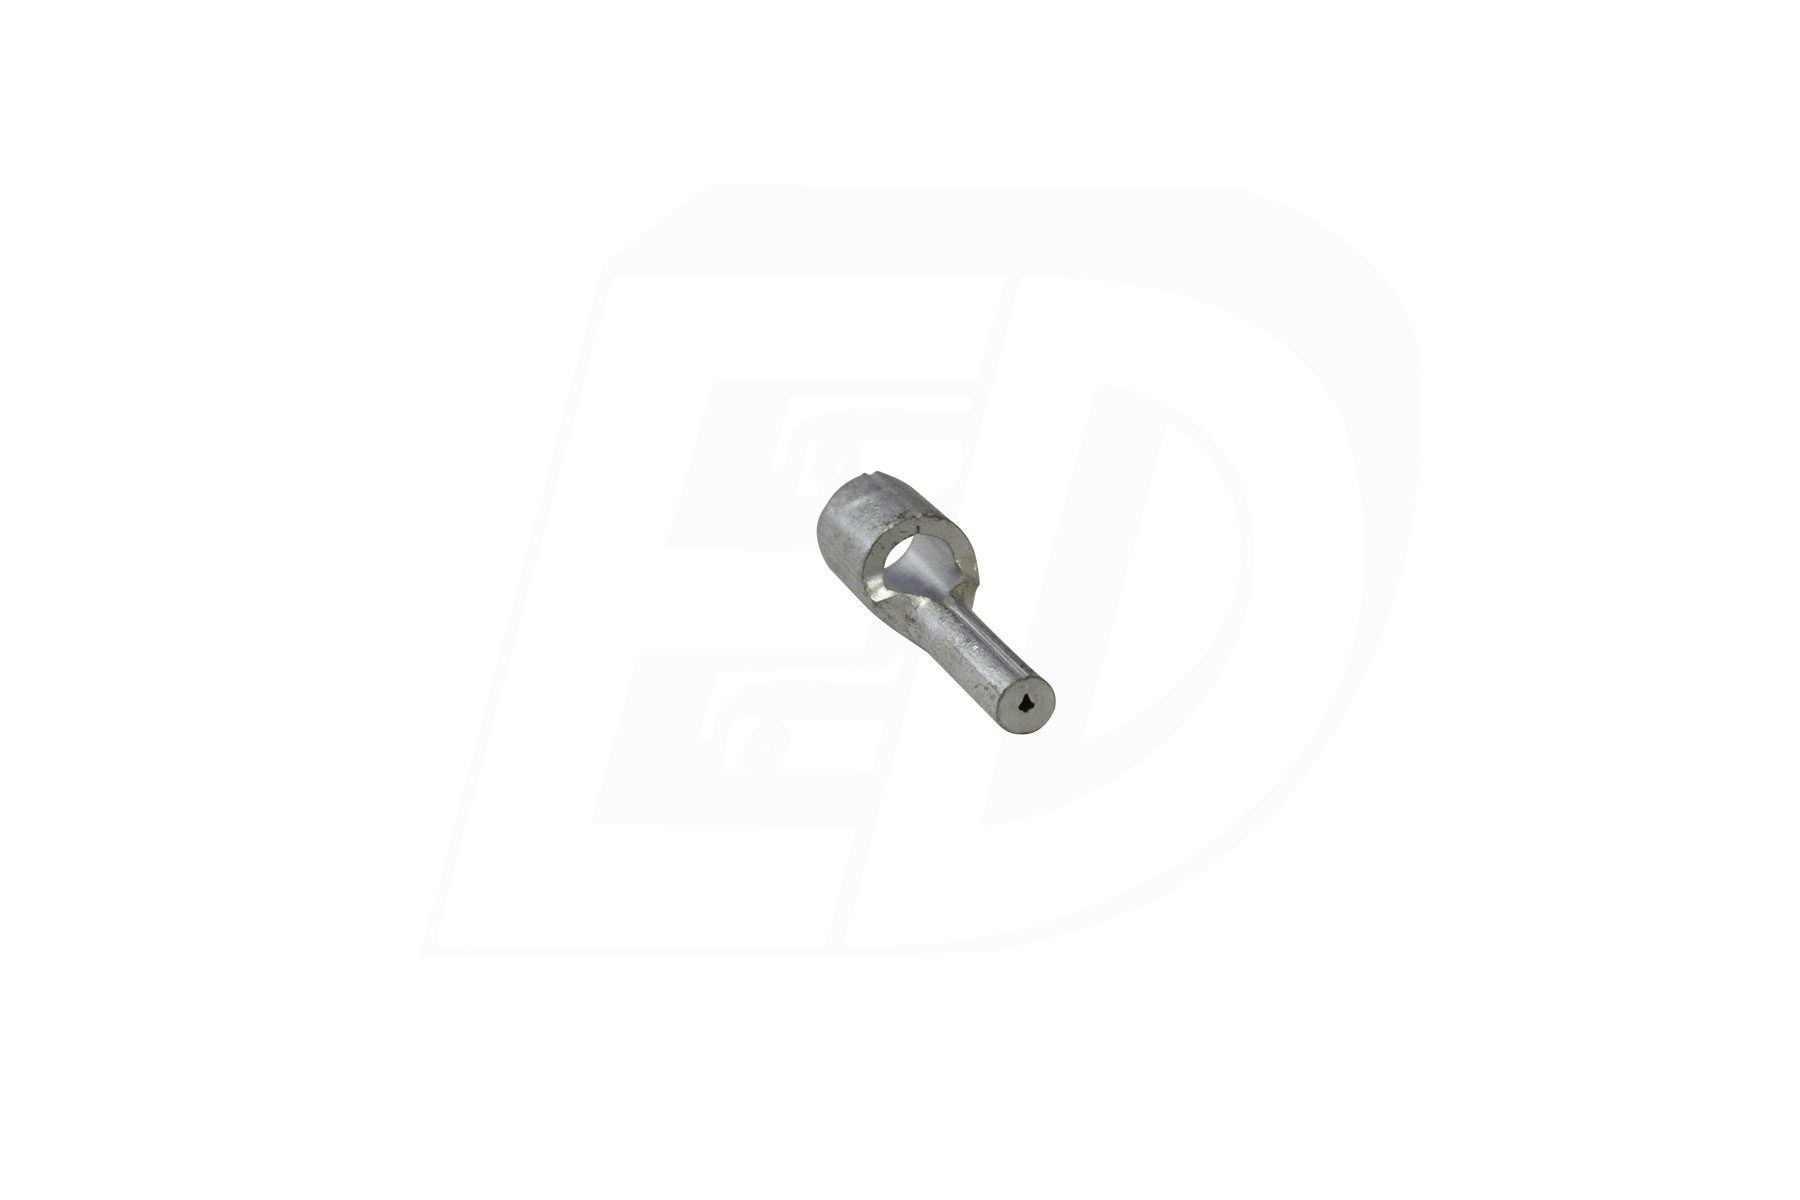 Butted Seam Pin Terminals 12 - 10 AWG